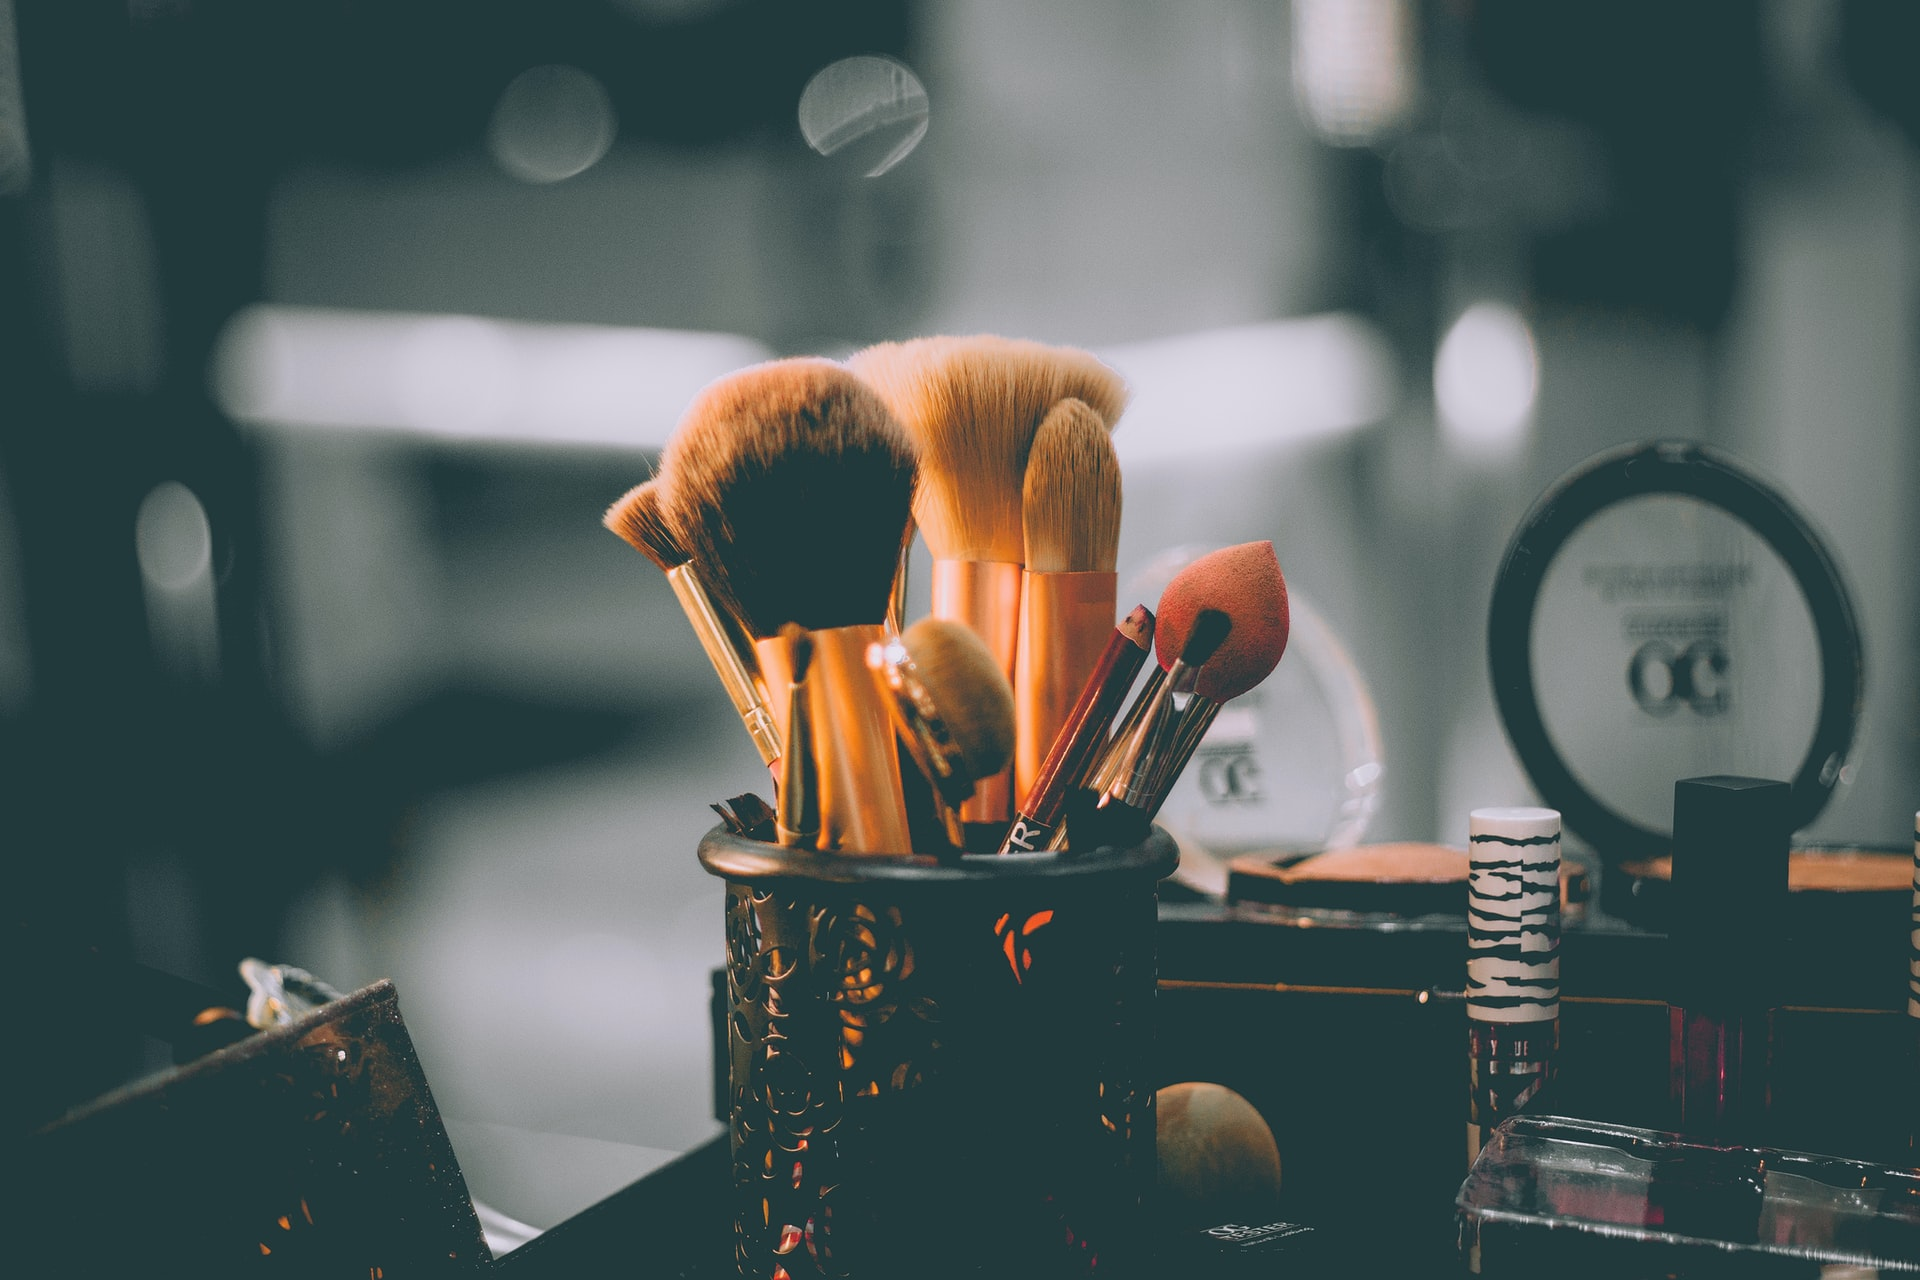 Assorted makeup brushes and makeup on a table. Photo courtesy of Raphael Lovaski on Unsplash.